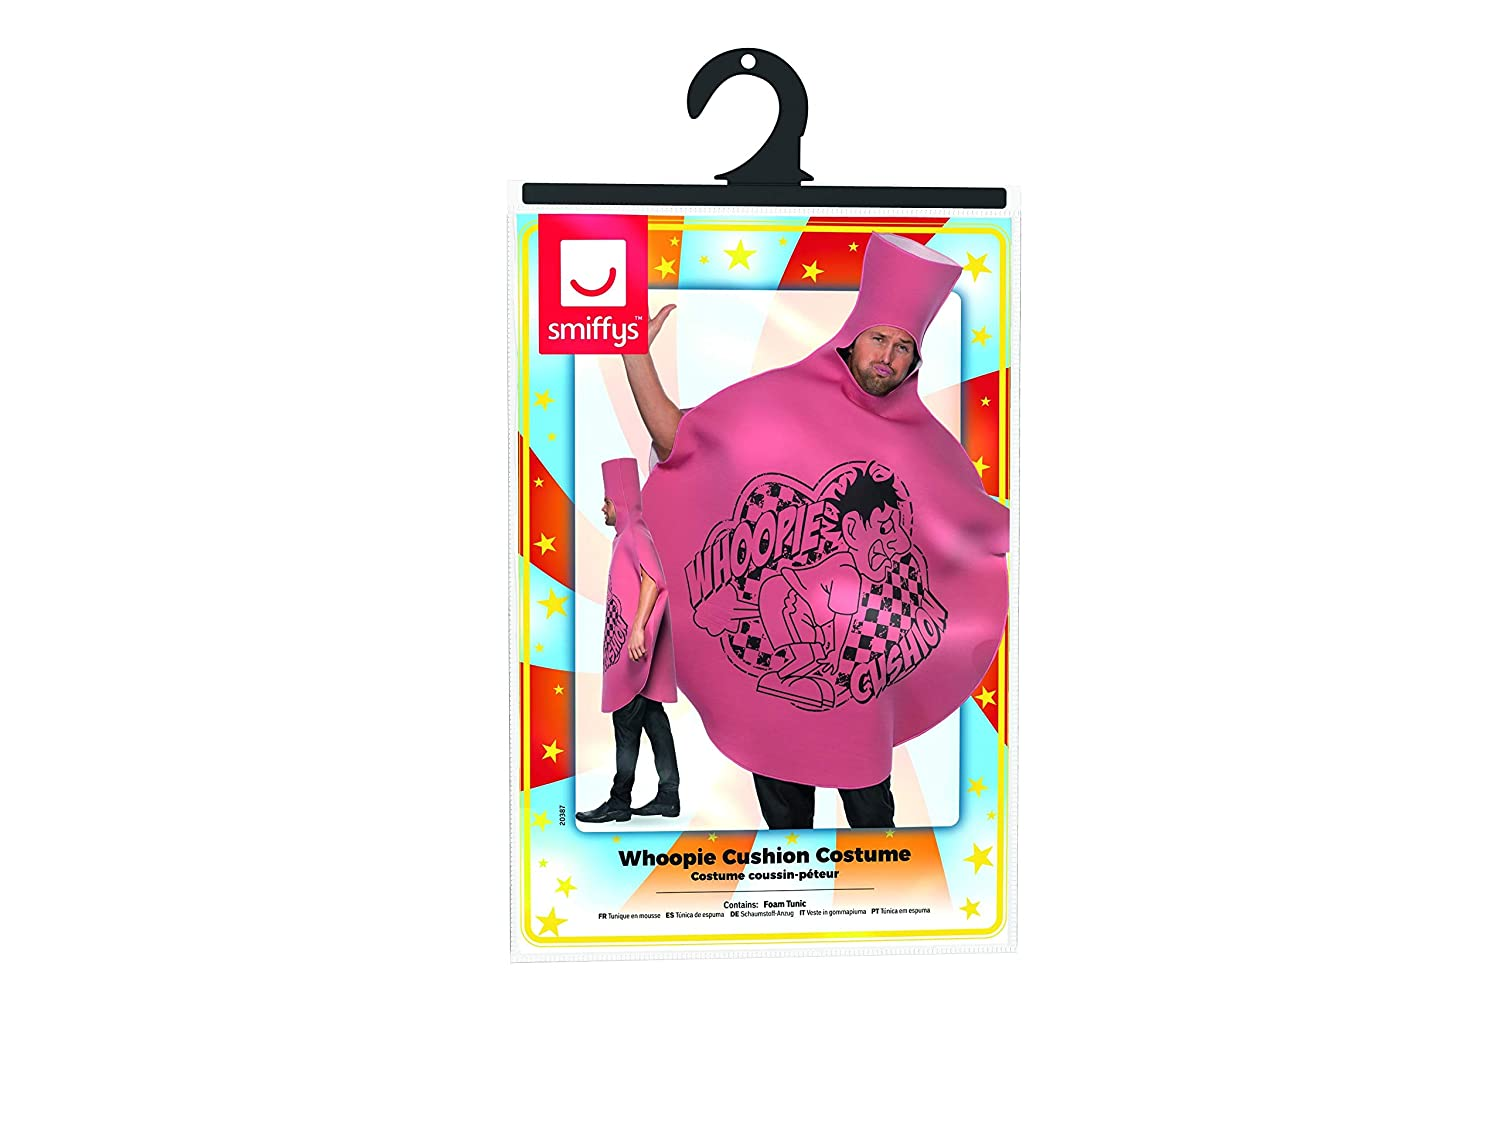 Amazon.com: Smiffy s de los hombres Whoopie Cushion traje ...